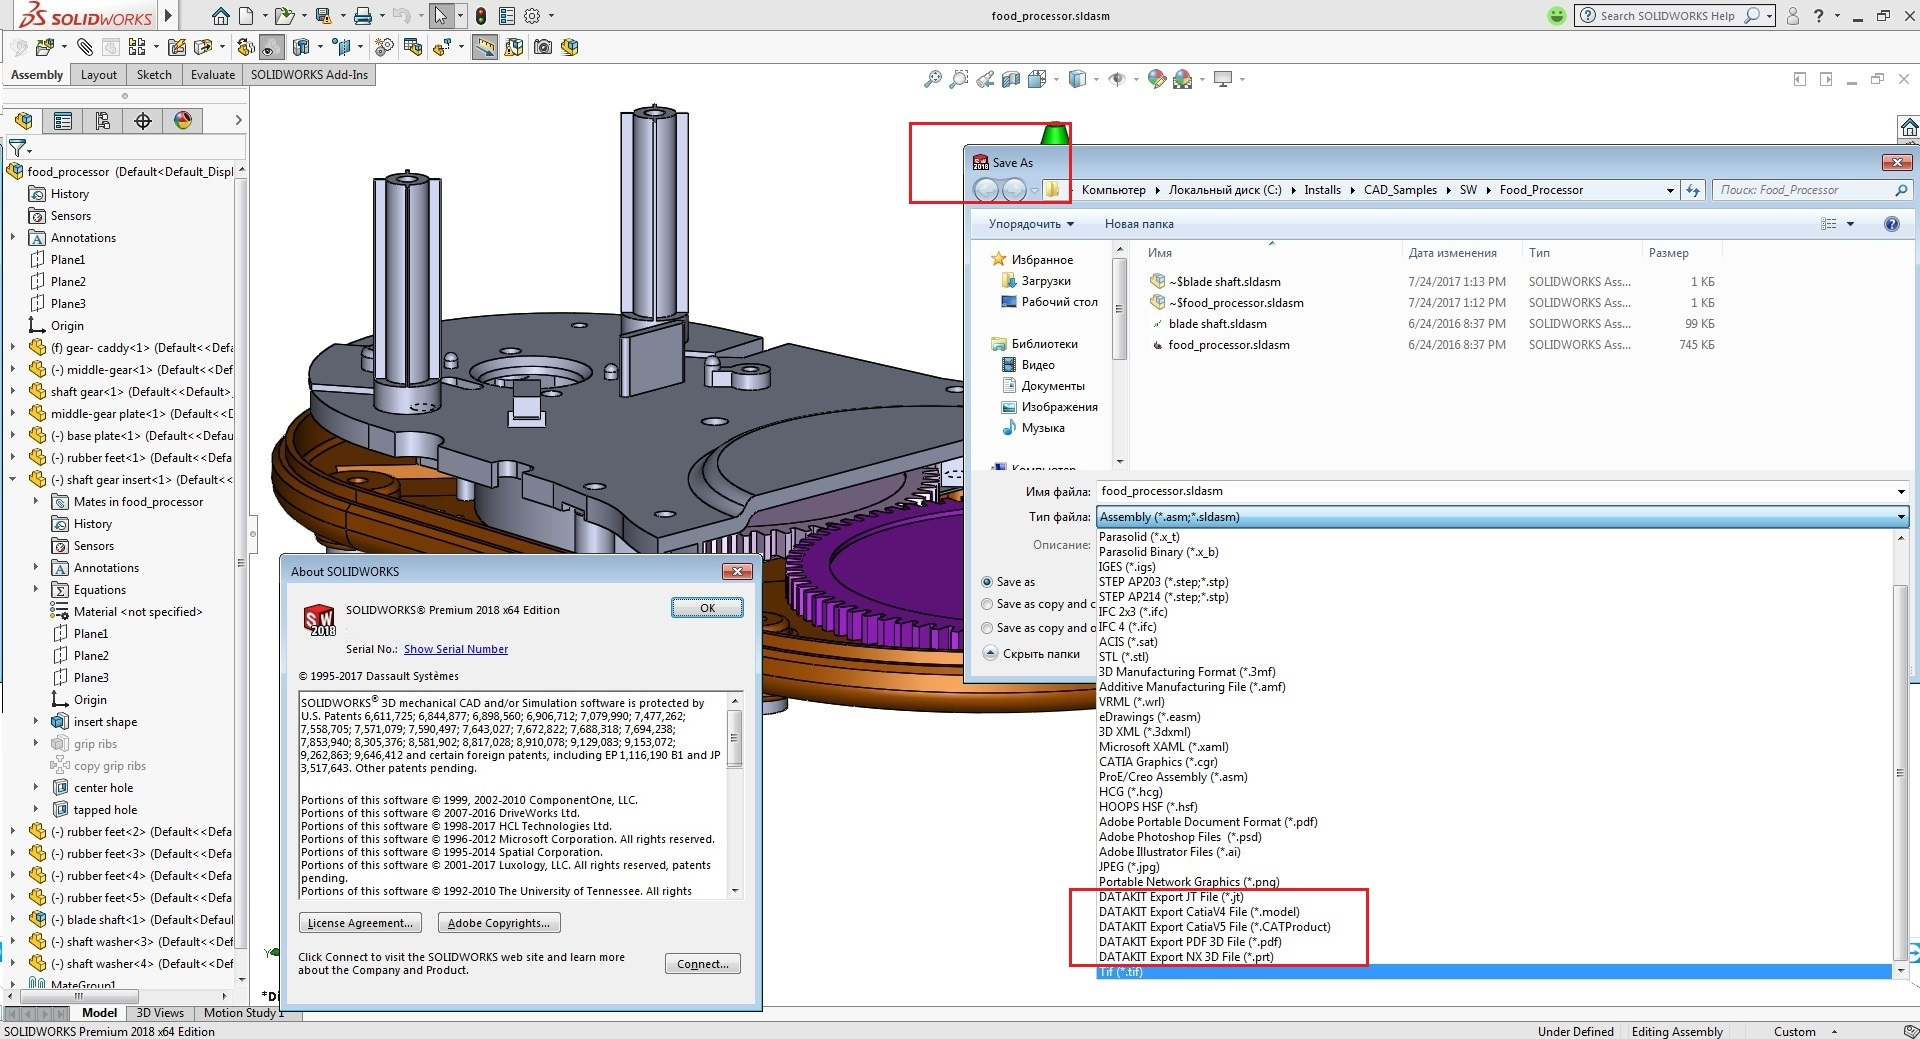 Working with DATAKIT 2017.3 Import-Export Plugins for SolidWorks full